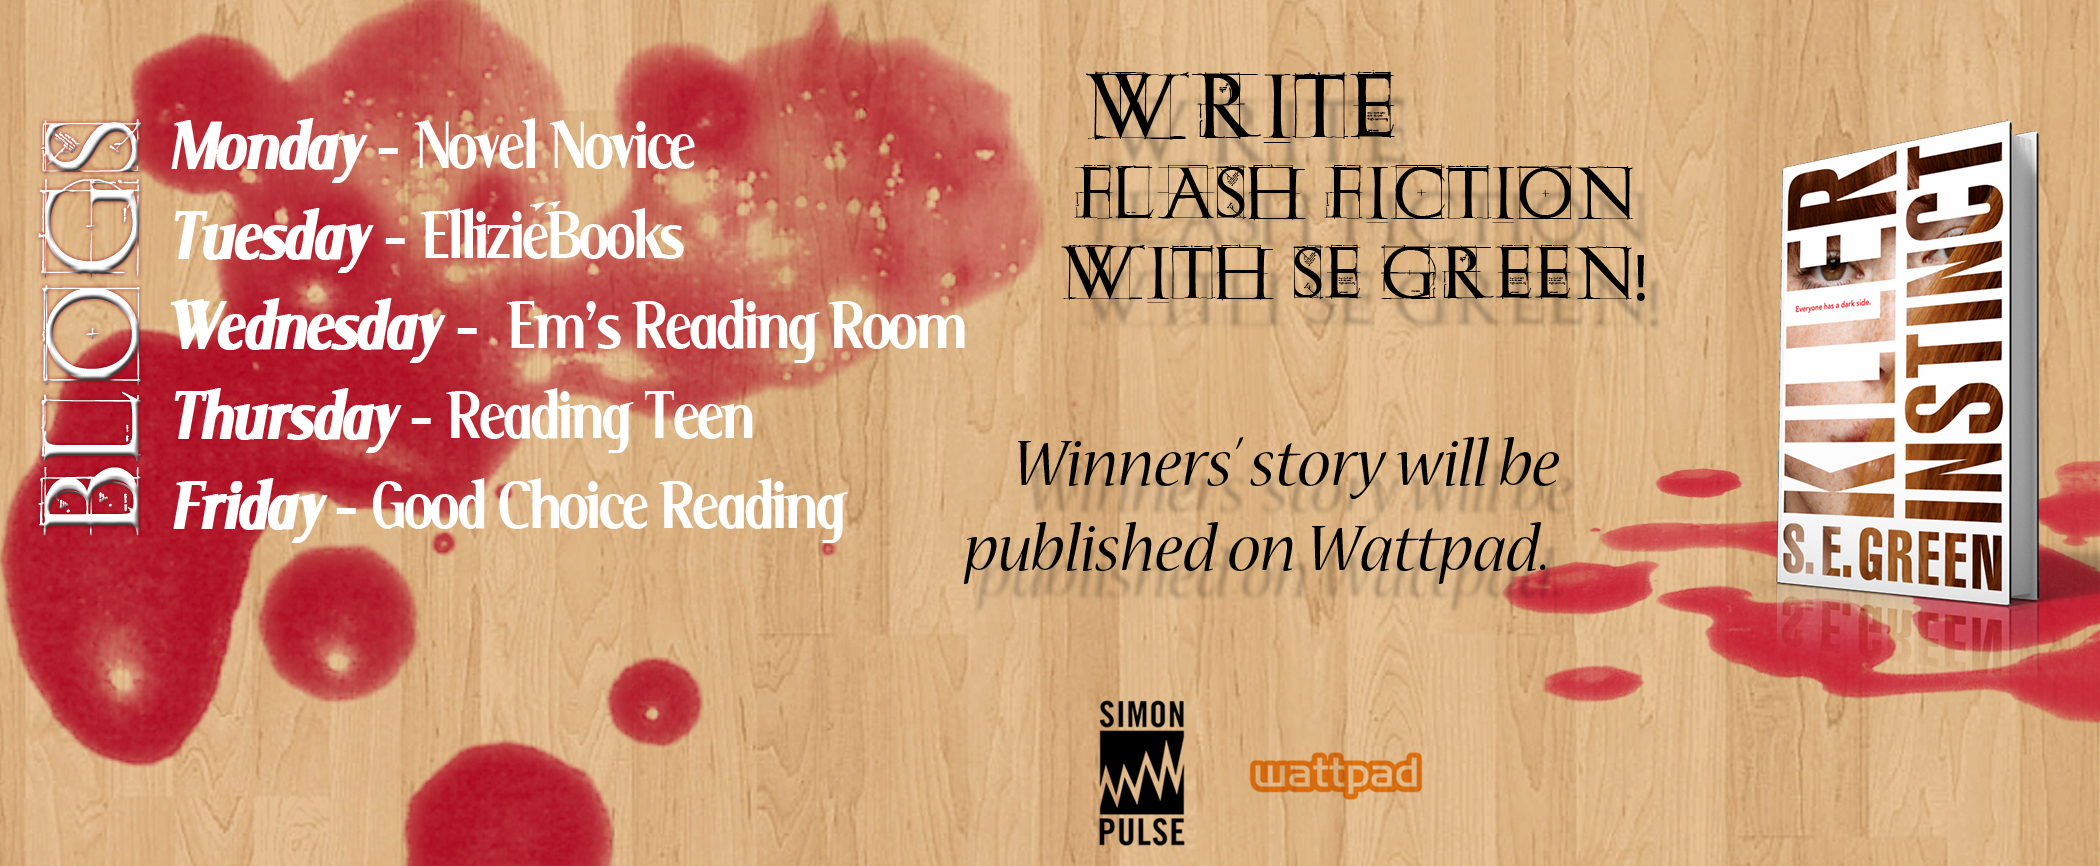 fiction writing contests 2014